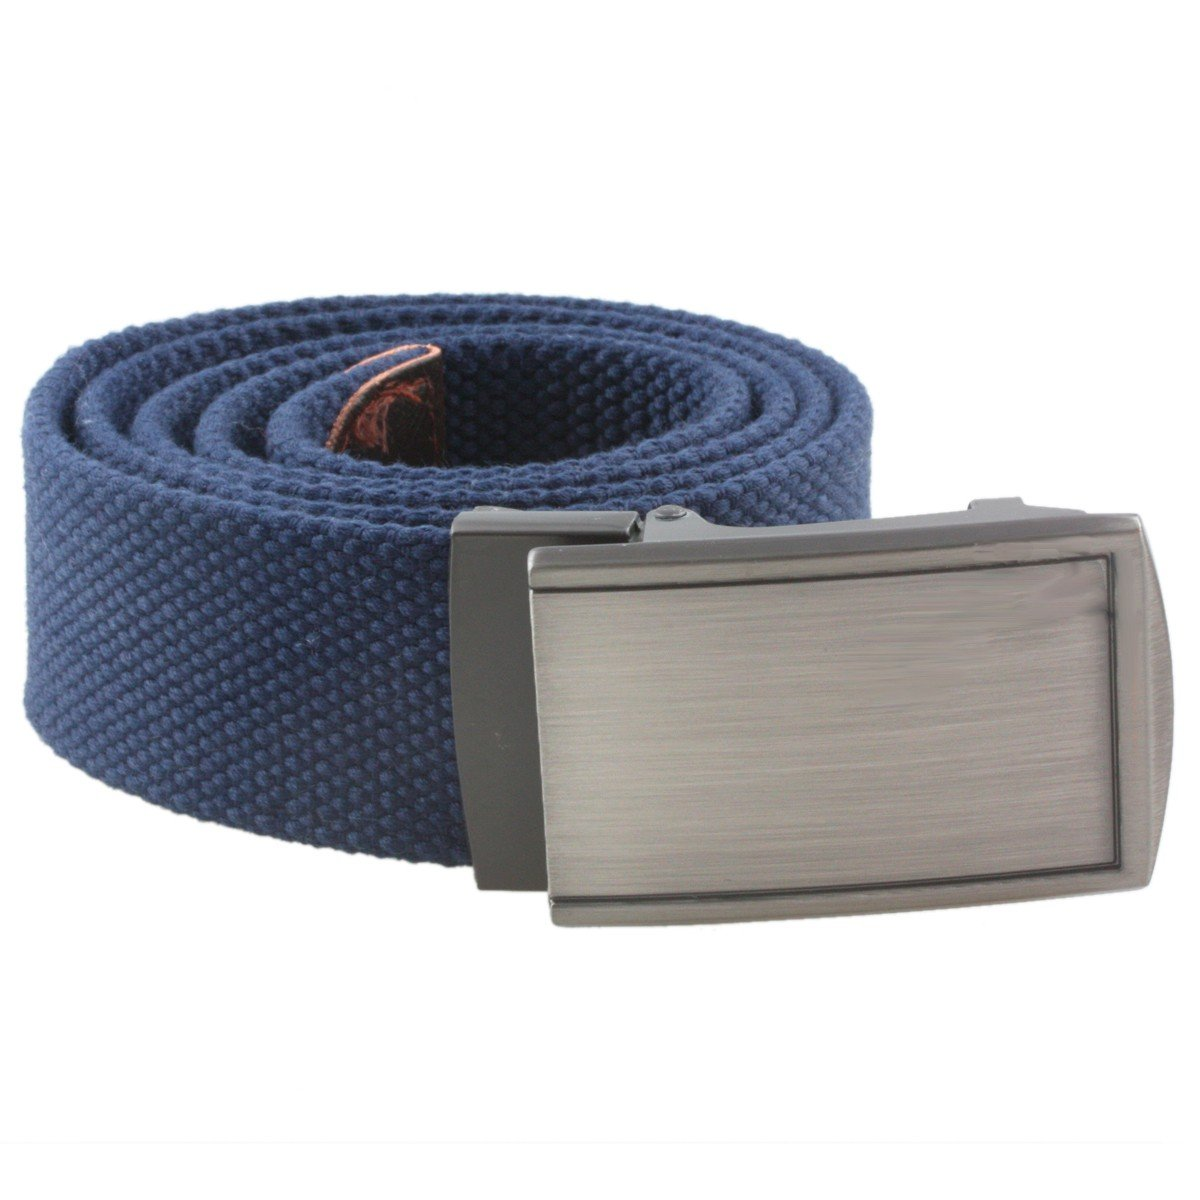 Solid Color Military Style Casual Belts with Automatic Buckle Sportmusies Canvas Web Belts for Men